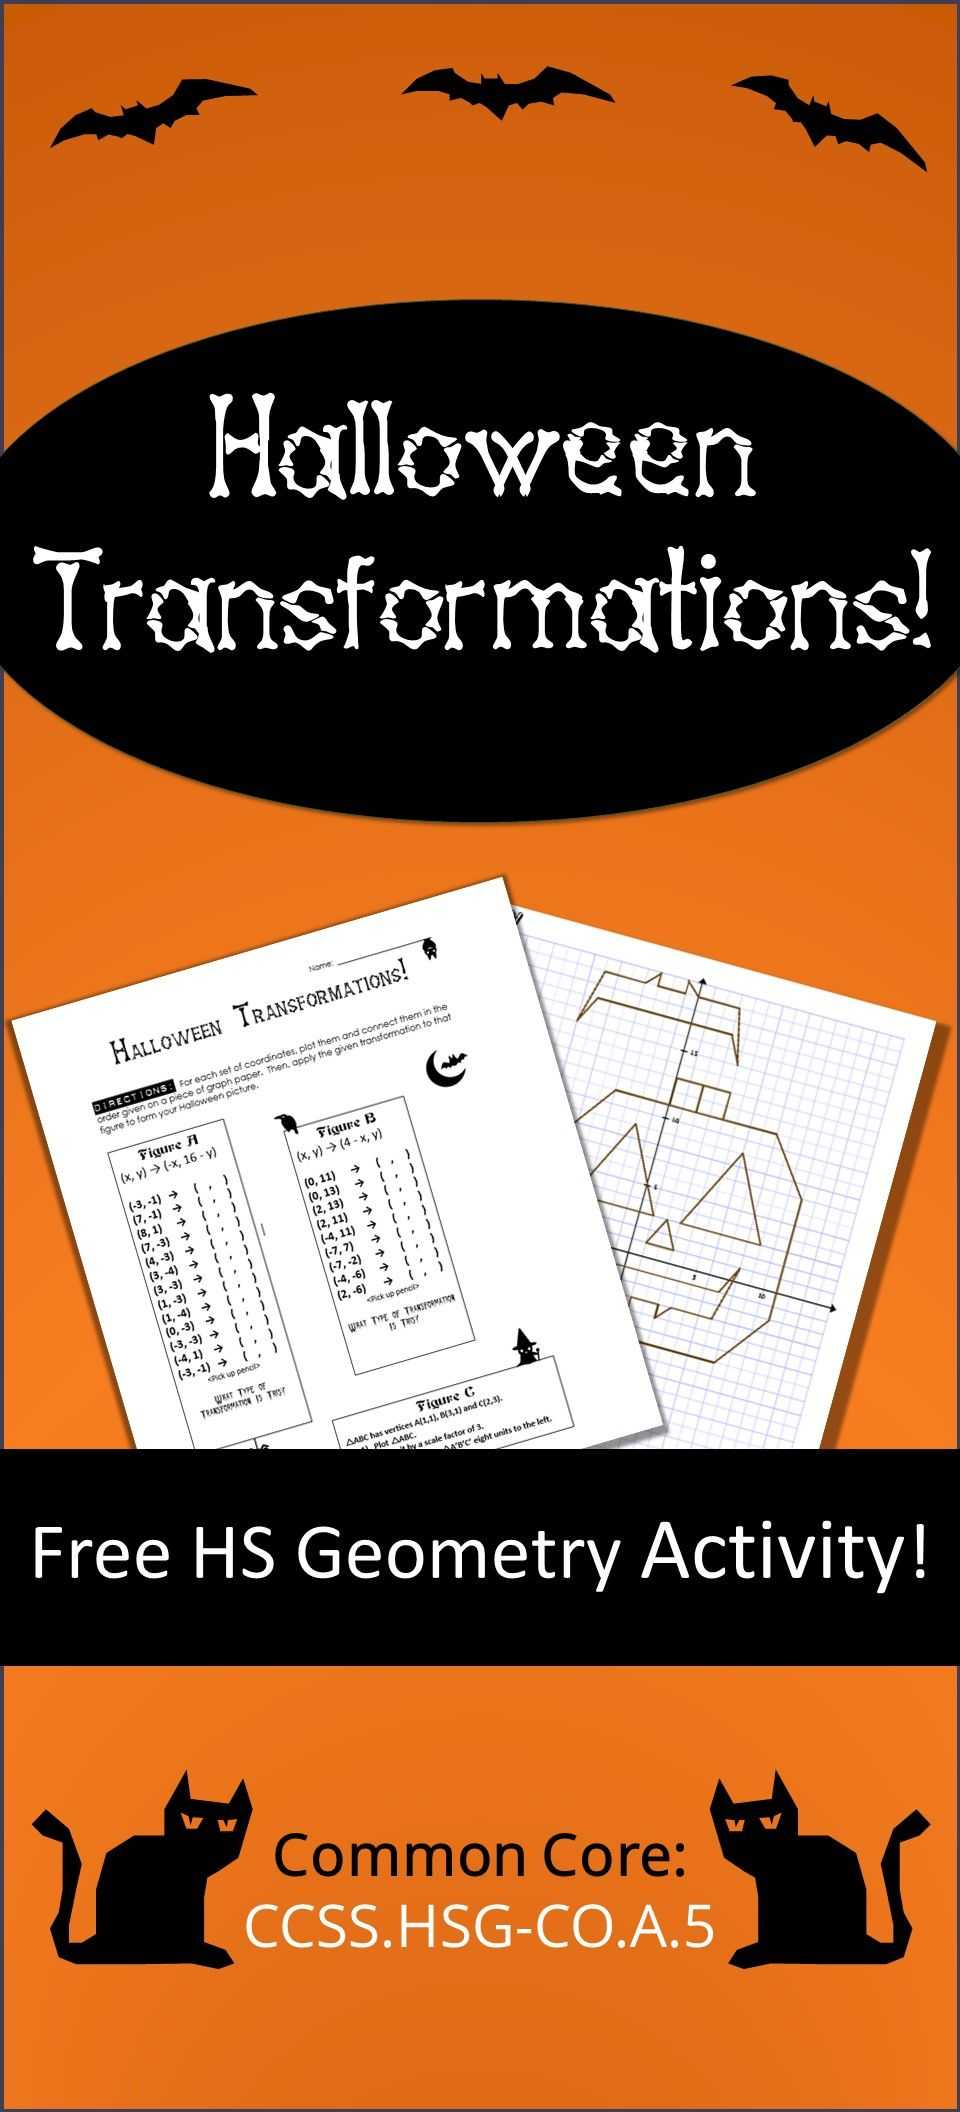 Similar Polygons Worksheet Answer Key with Halloween Transformations Hs Geometry Activity – Aligned to Mon